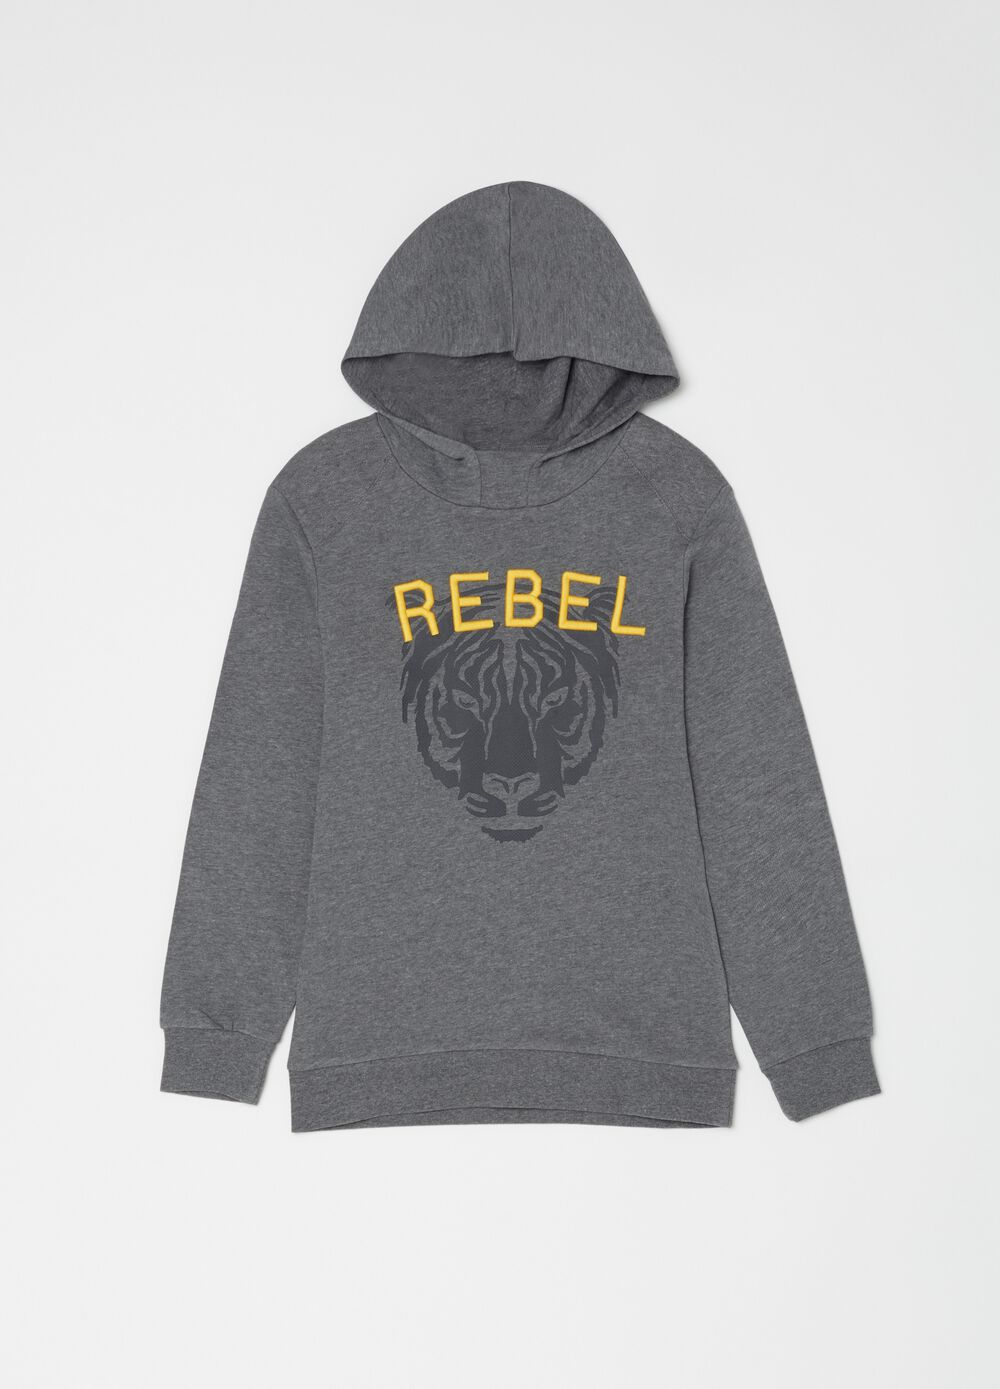 French terry sweatshirt with rubber tiger print